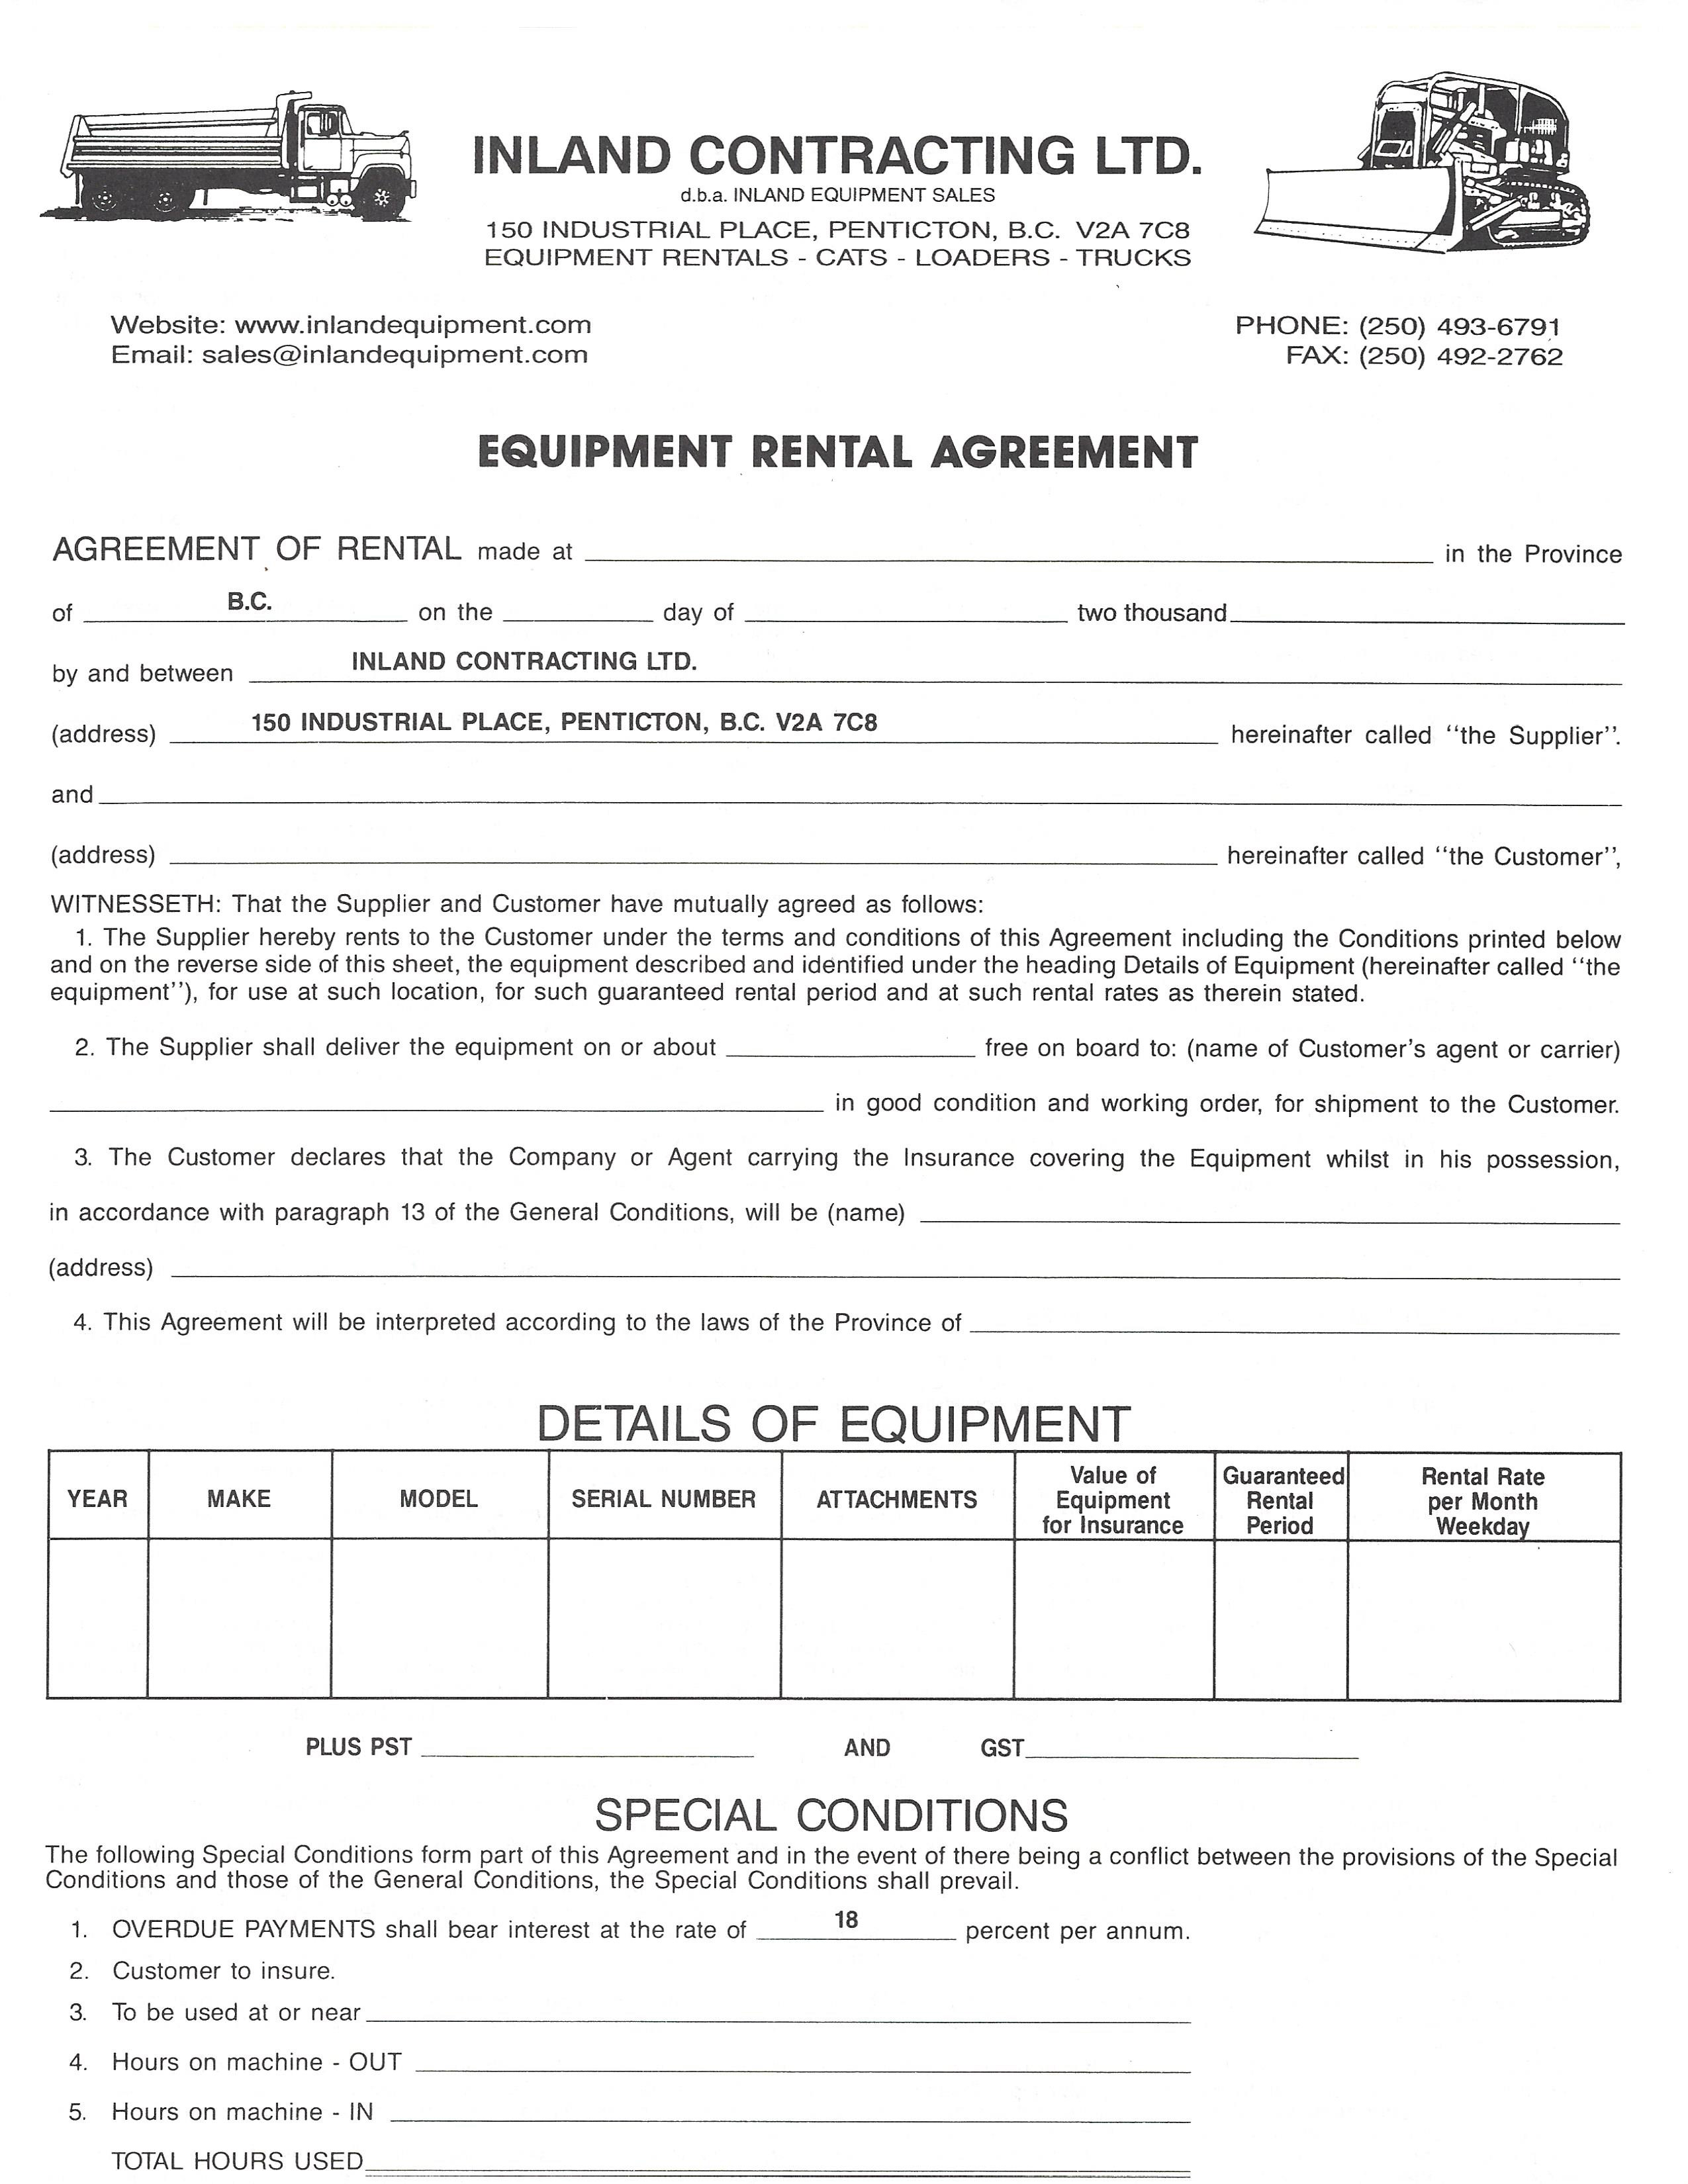 Rental Agreement Inland Equipment Sales Rentals Rent To Own